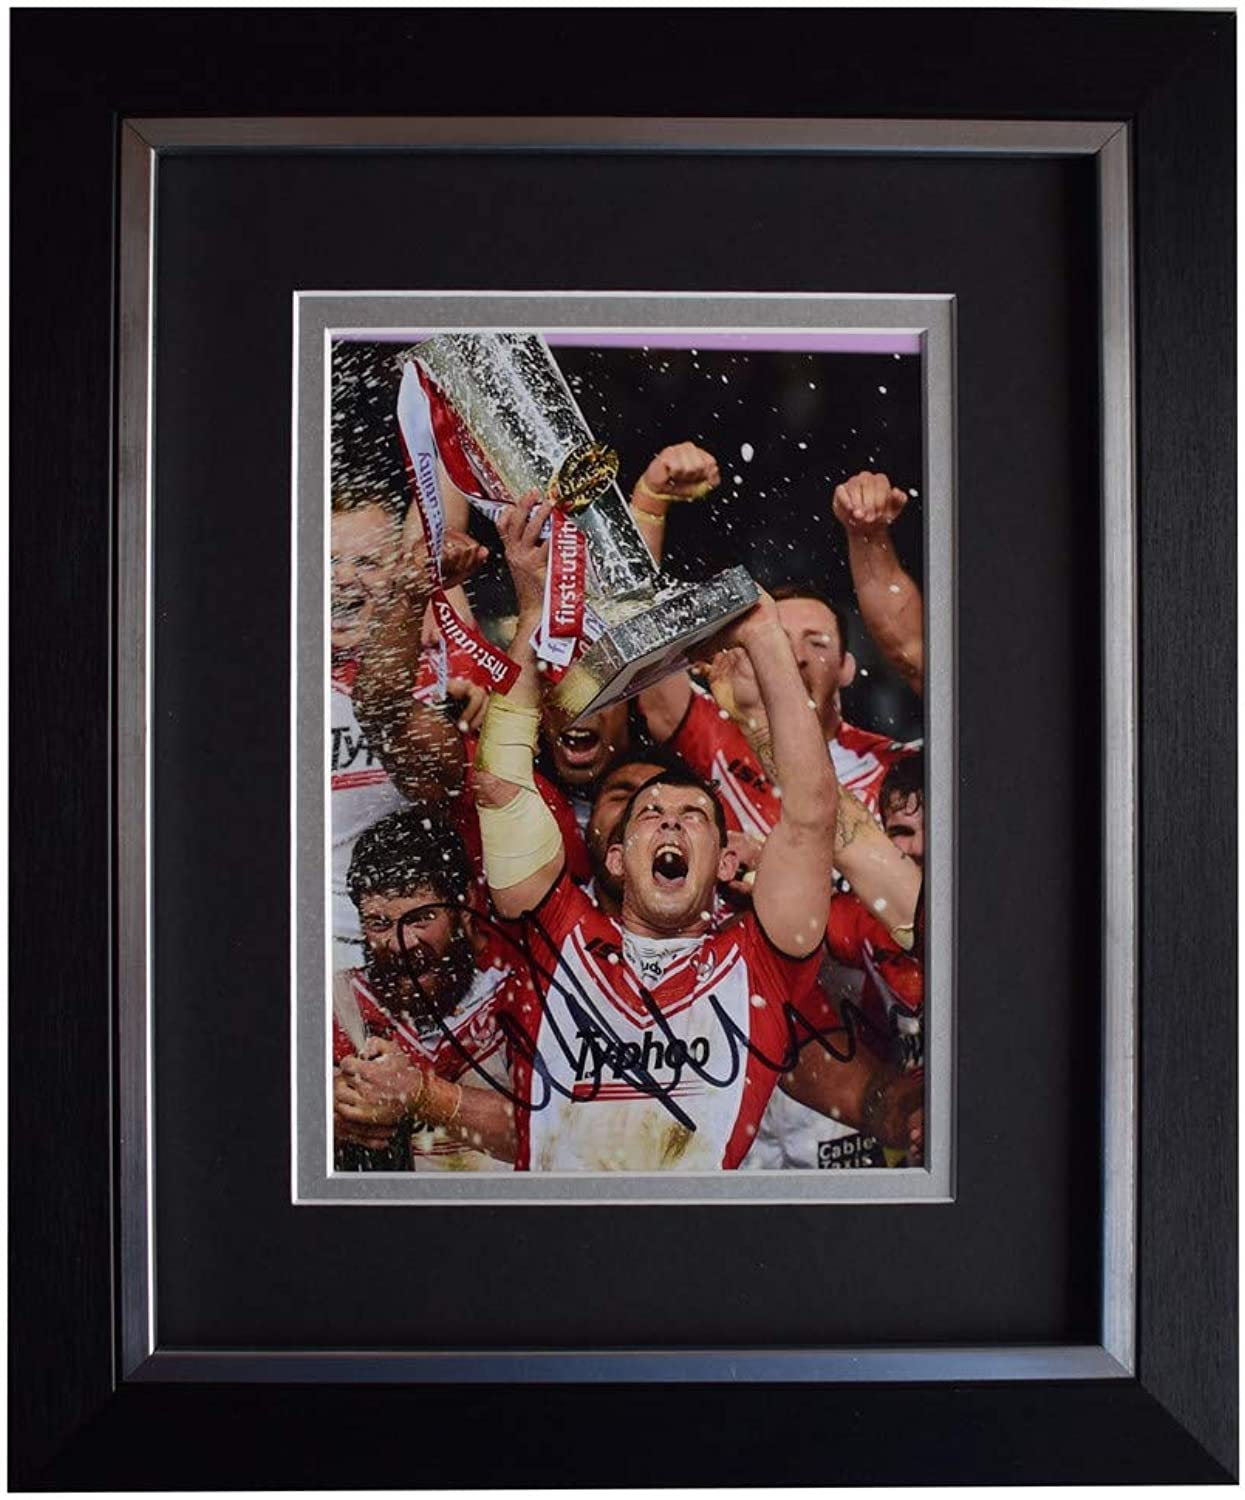 Sportagraphs Paul Wellens Signed 10x8 Framed Photo Autograph Display St Helens Rugby COA